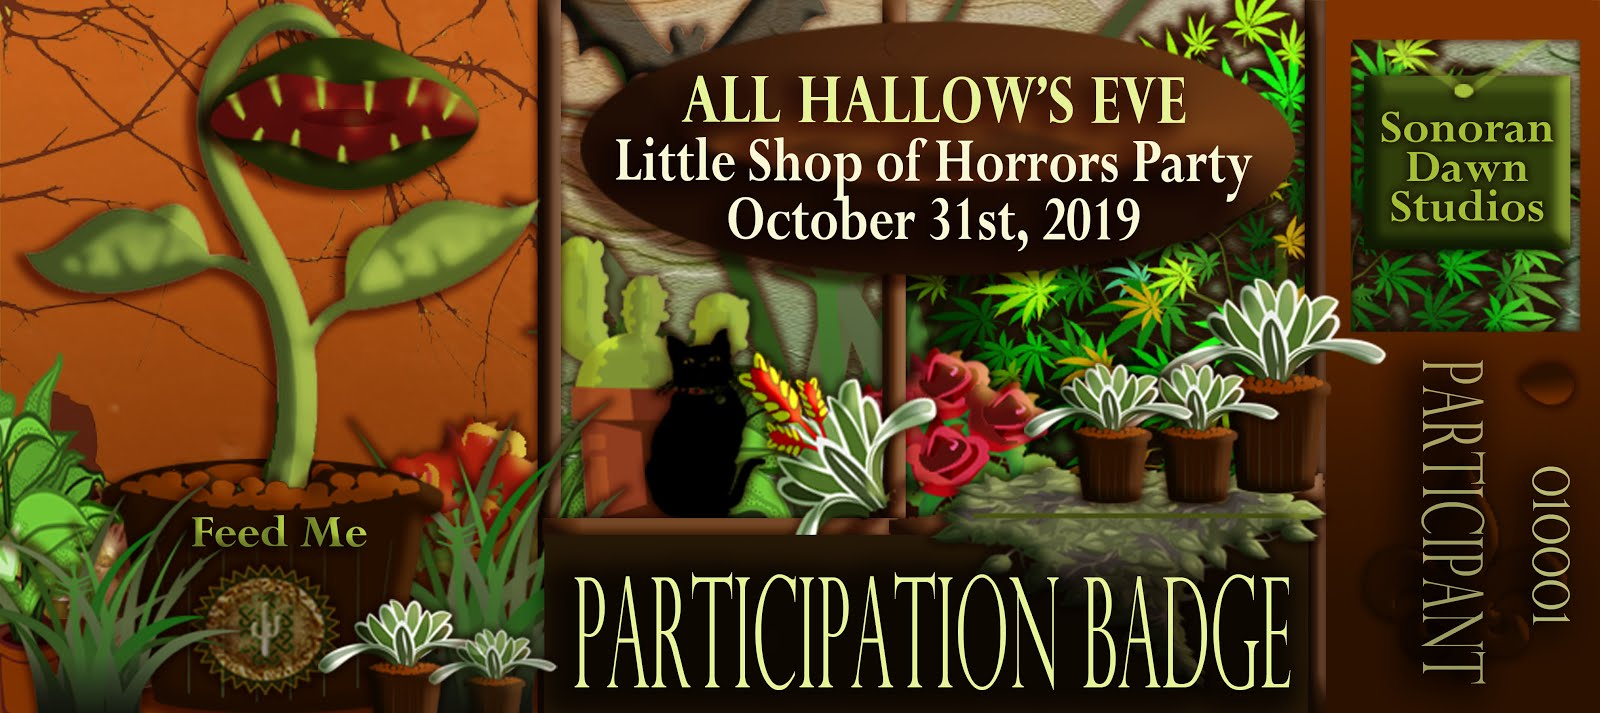 Sonoran Dawn's All Hallow's Eve Party